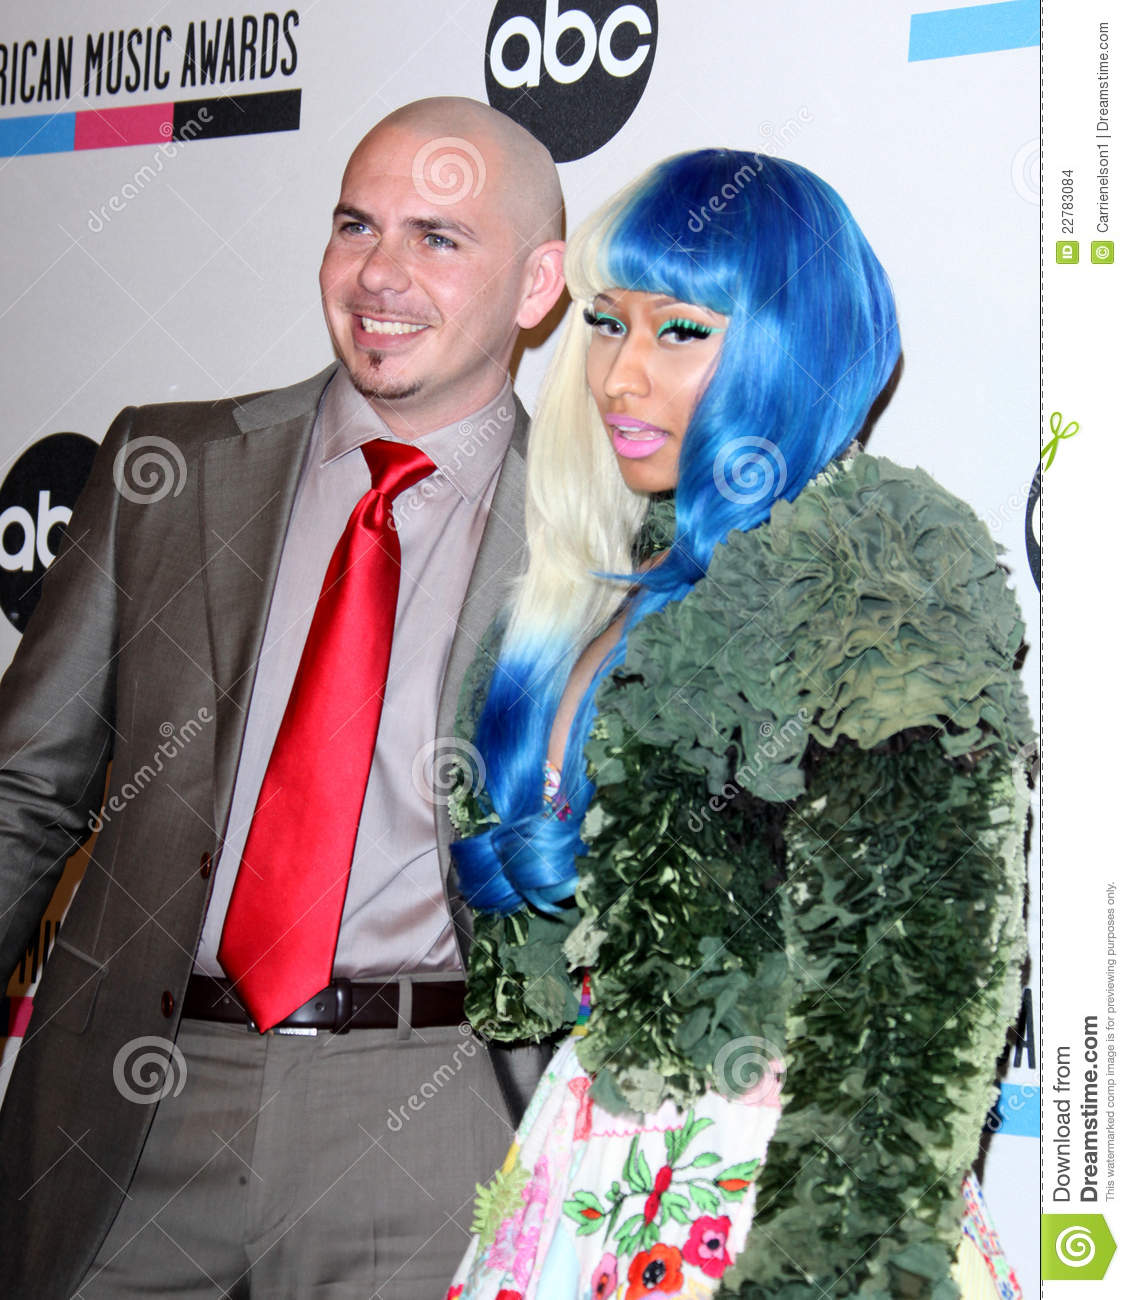 Minaj nicki pitbull